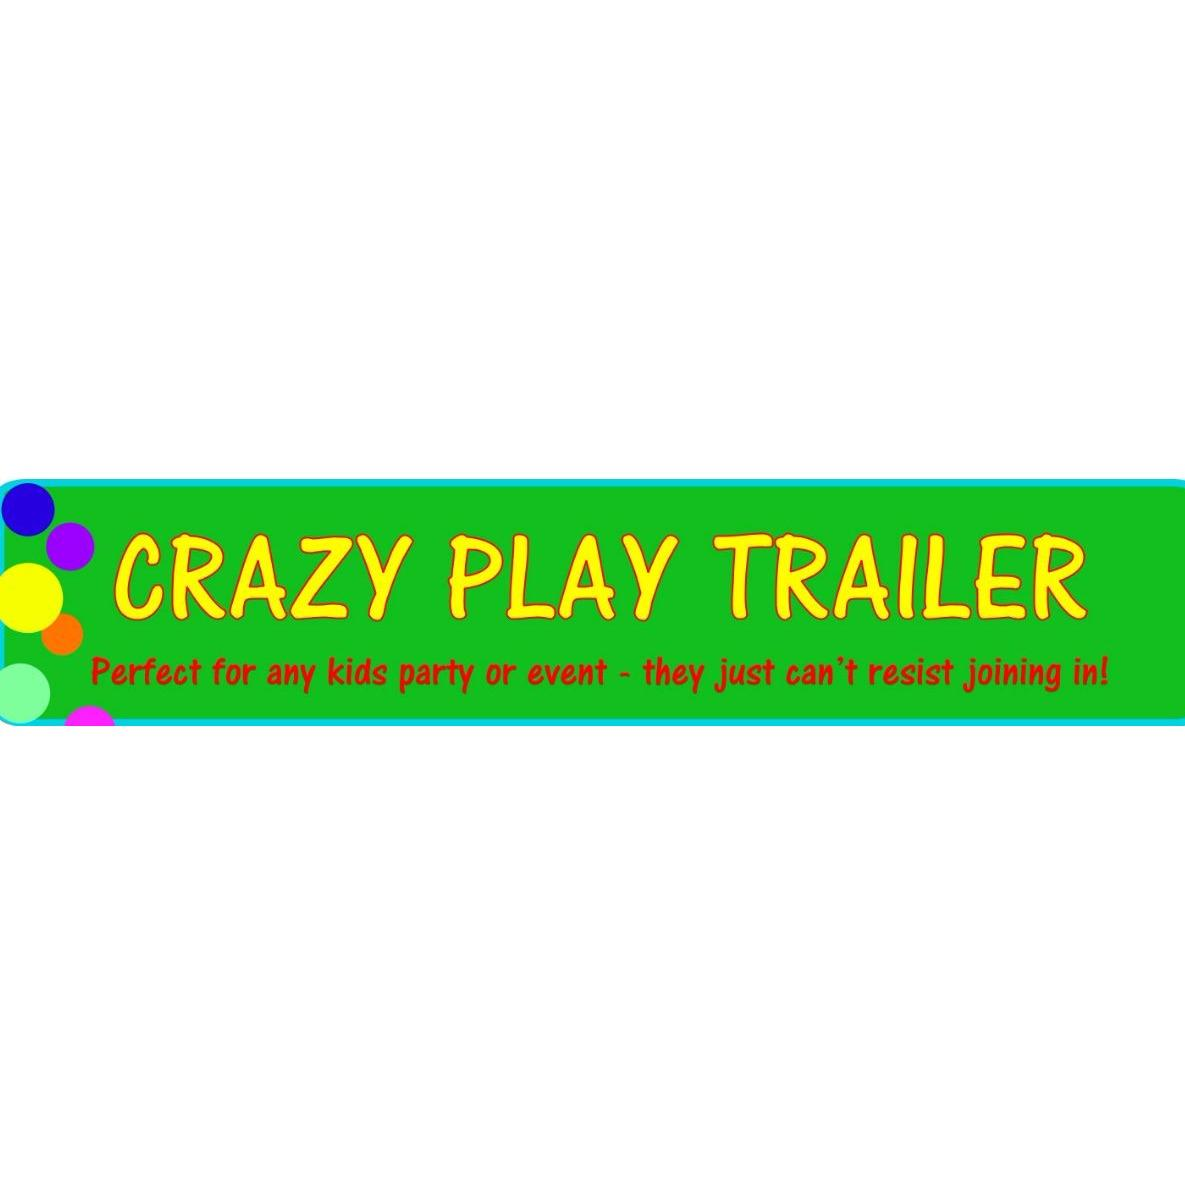 Crazy Play Trailer